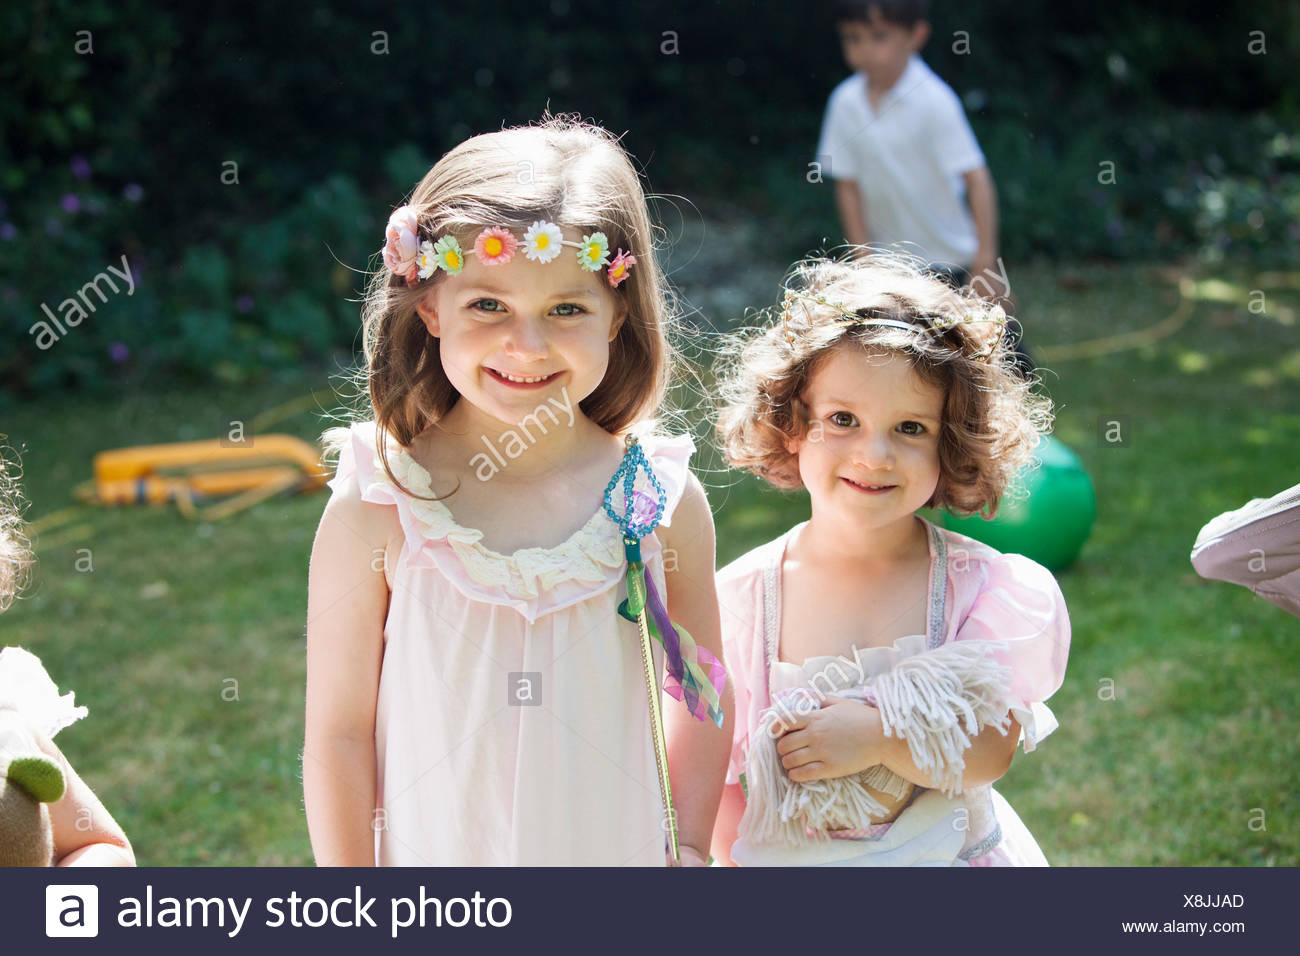 Two smiling young girls at a garden party. - Stock Image